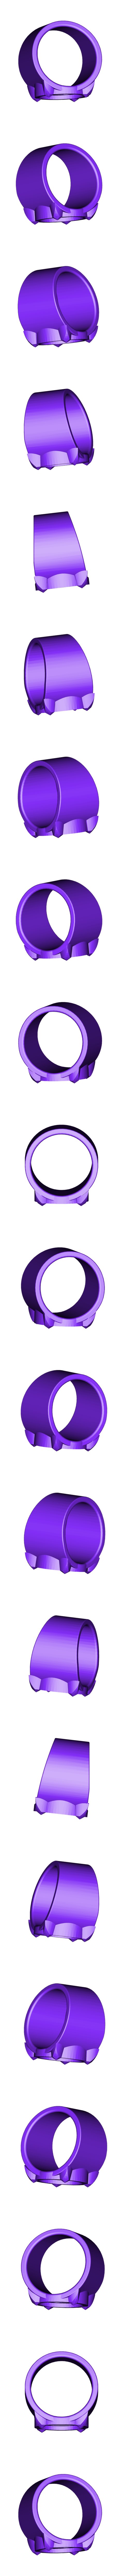 ChatNoirRingDS_-_Body.STL Download free STL file Chat Noir's Ring • 3D print template, Vexelius